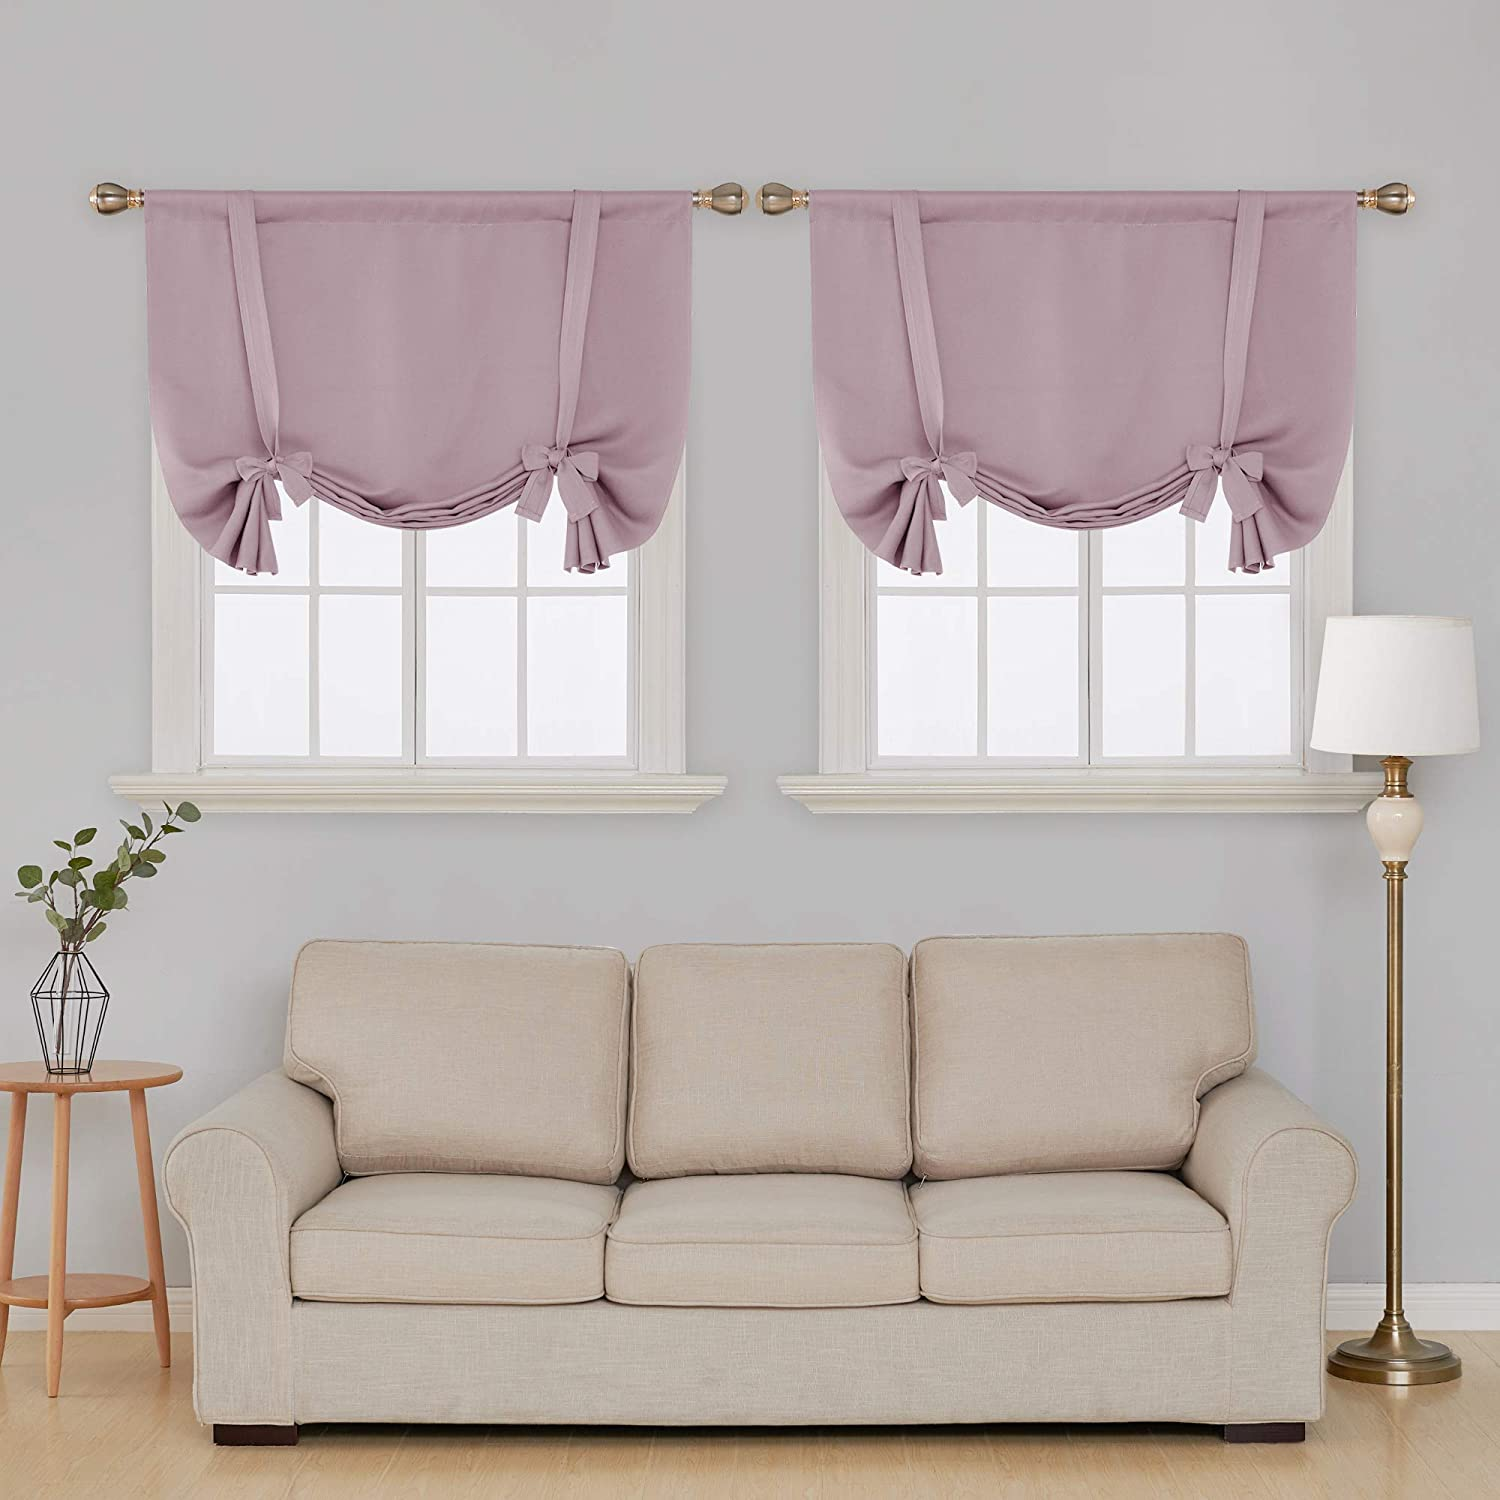 Deconovo Pink Blackout Curtains Light Blocking Curtains Tie Up Small Window Curtains for Girls Room Baby Pink 42W x 63L 2 Drapes